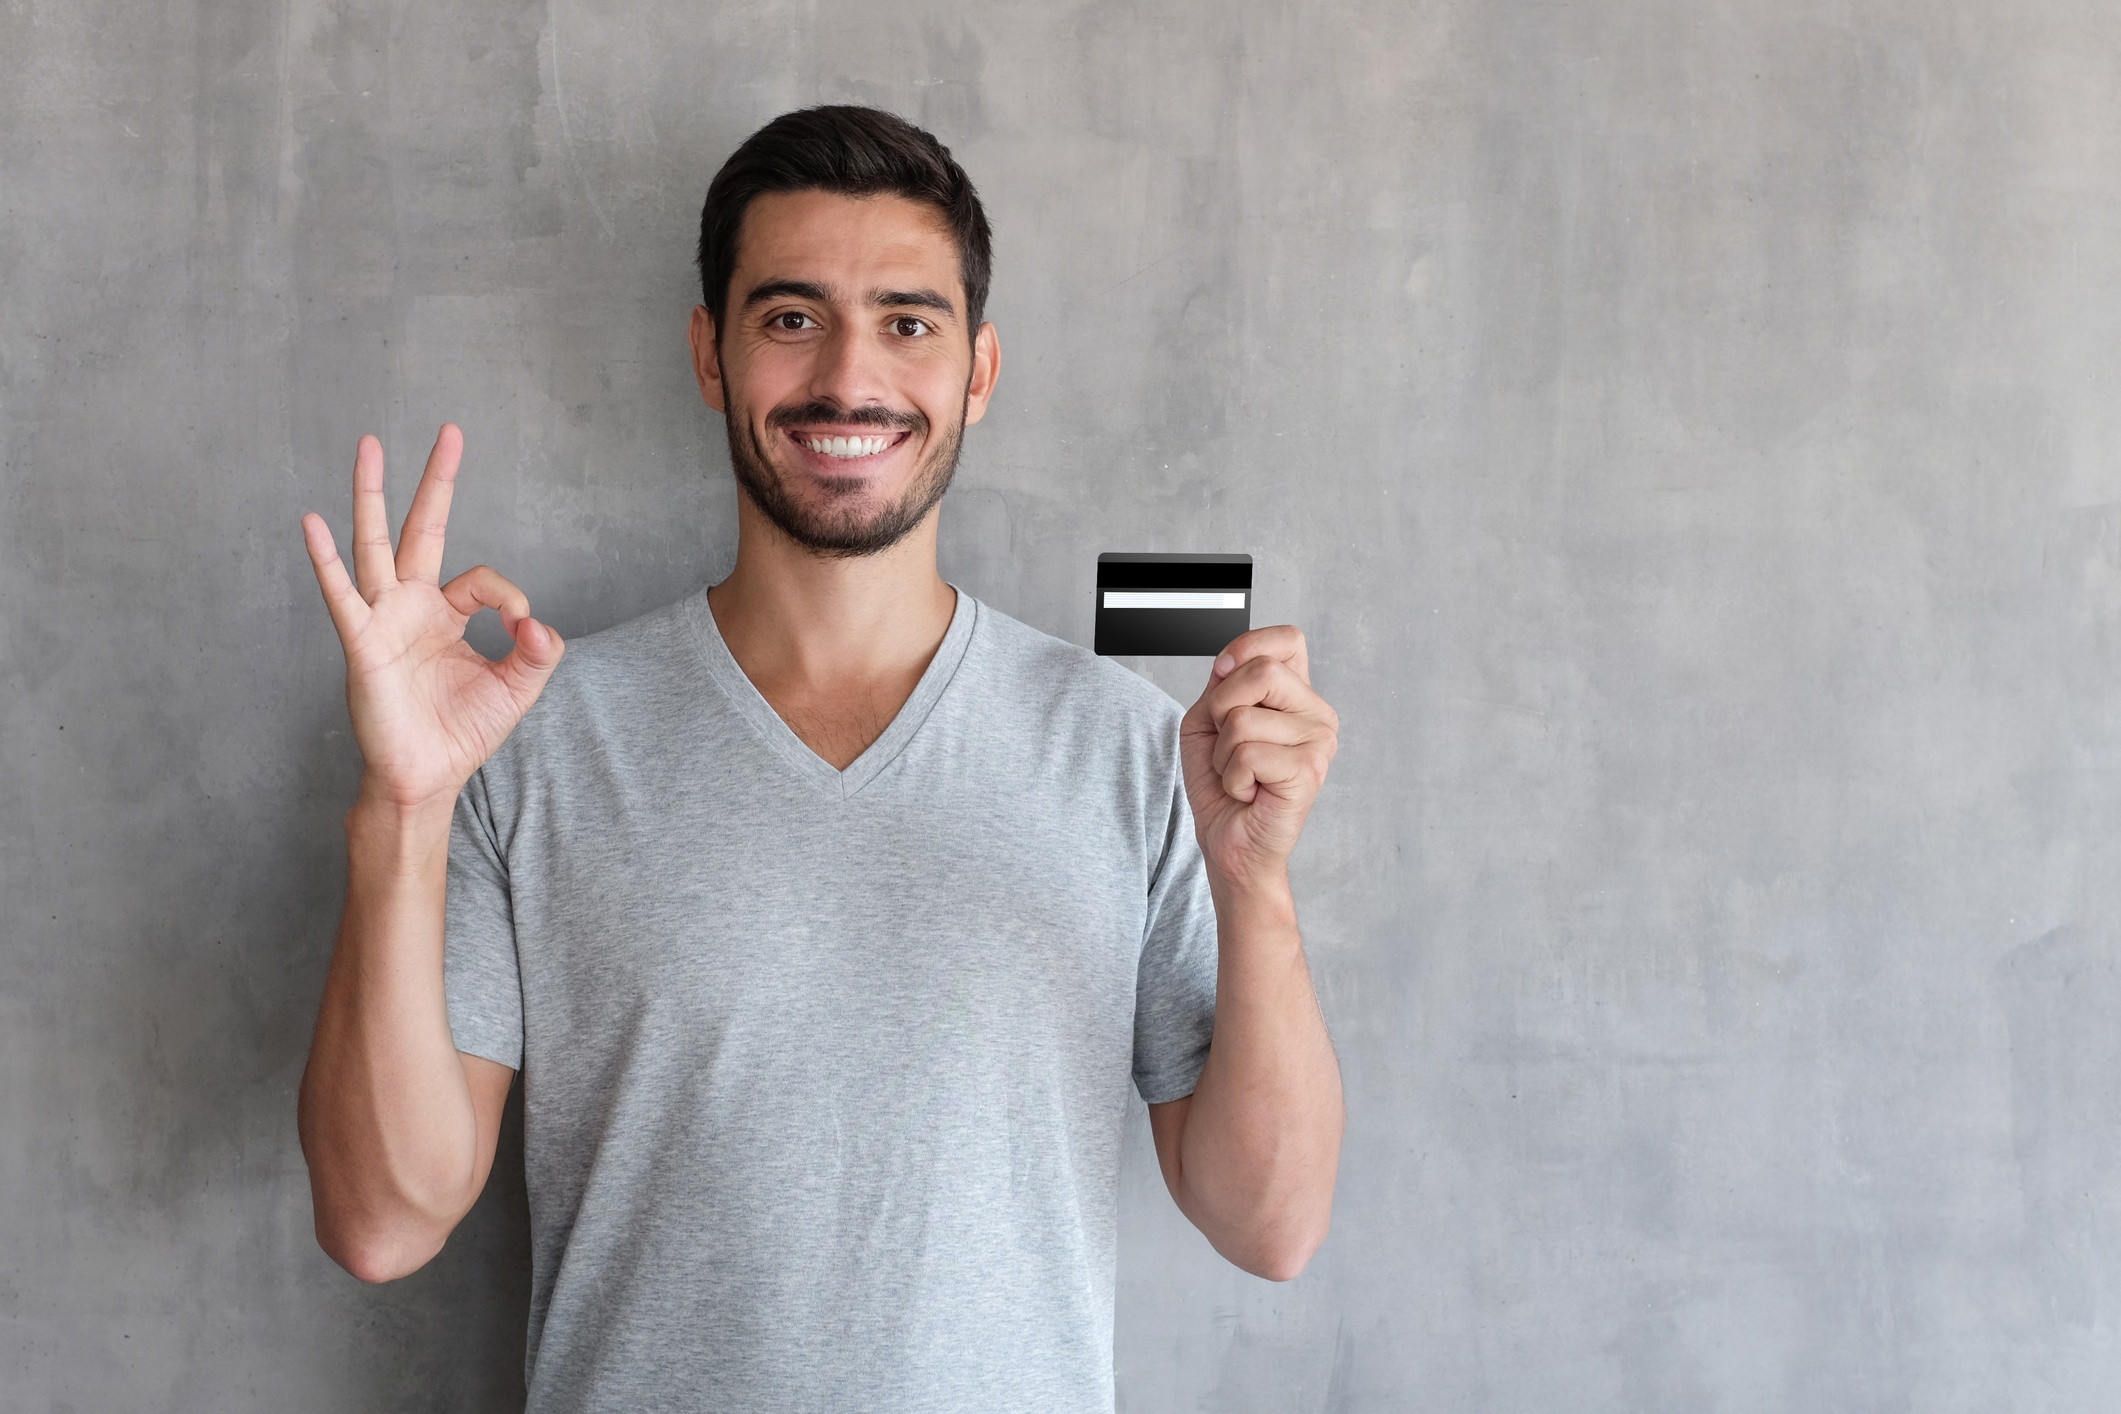 A smiling person holding a credit card.